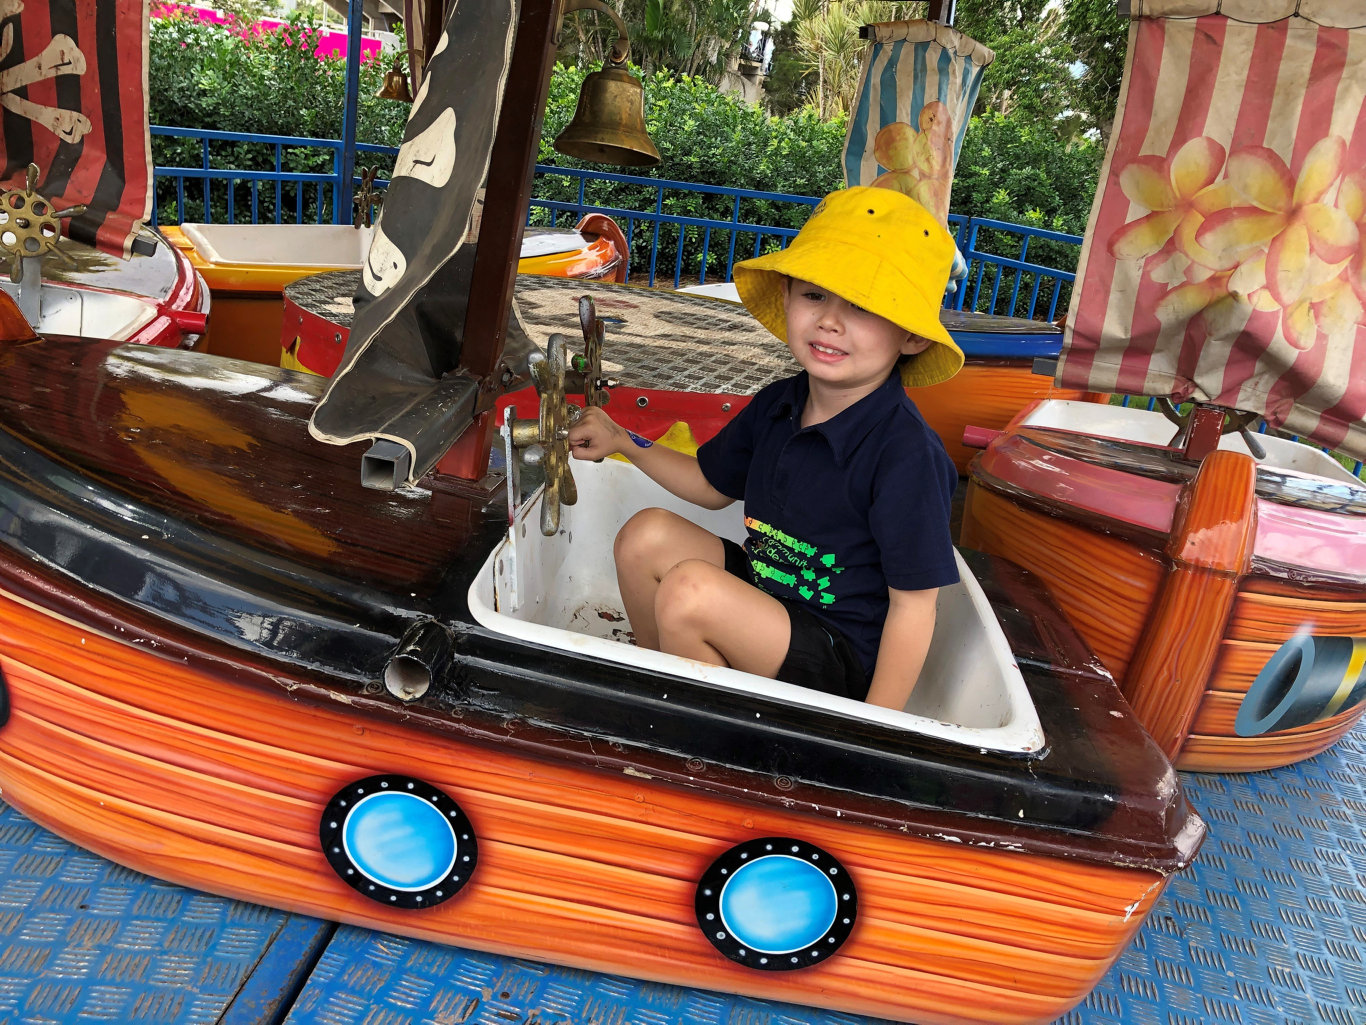 Leo Hadley loved having a ride in the pirate ships.